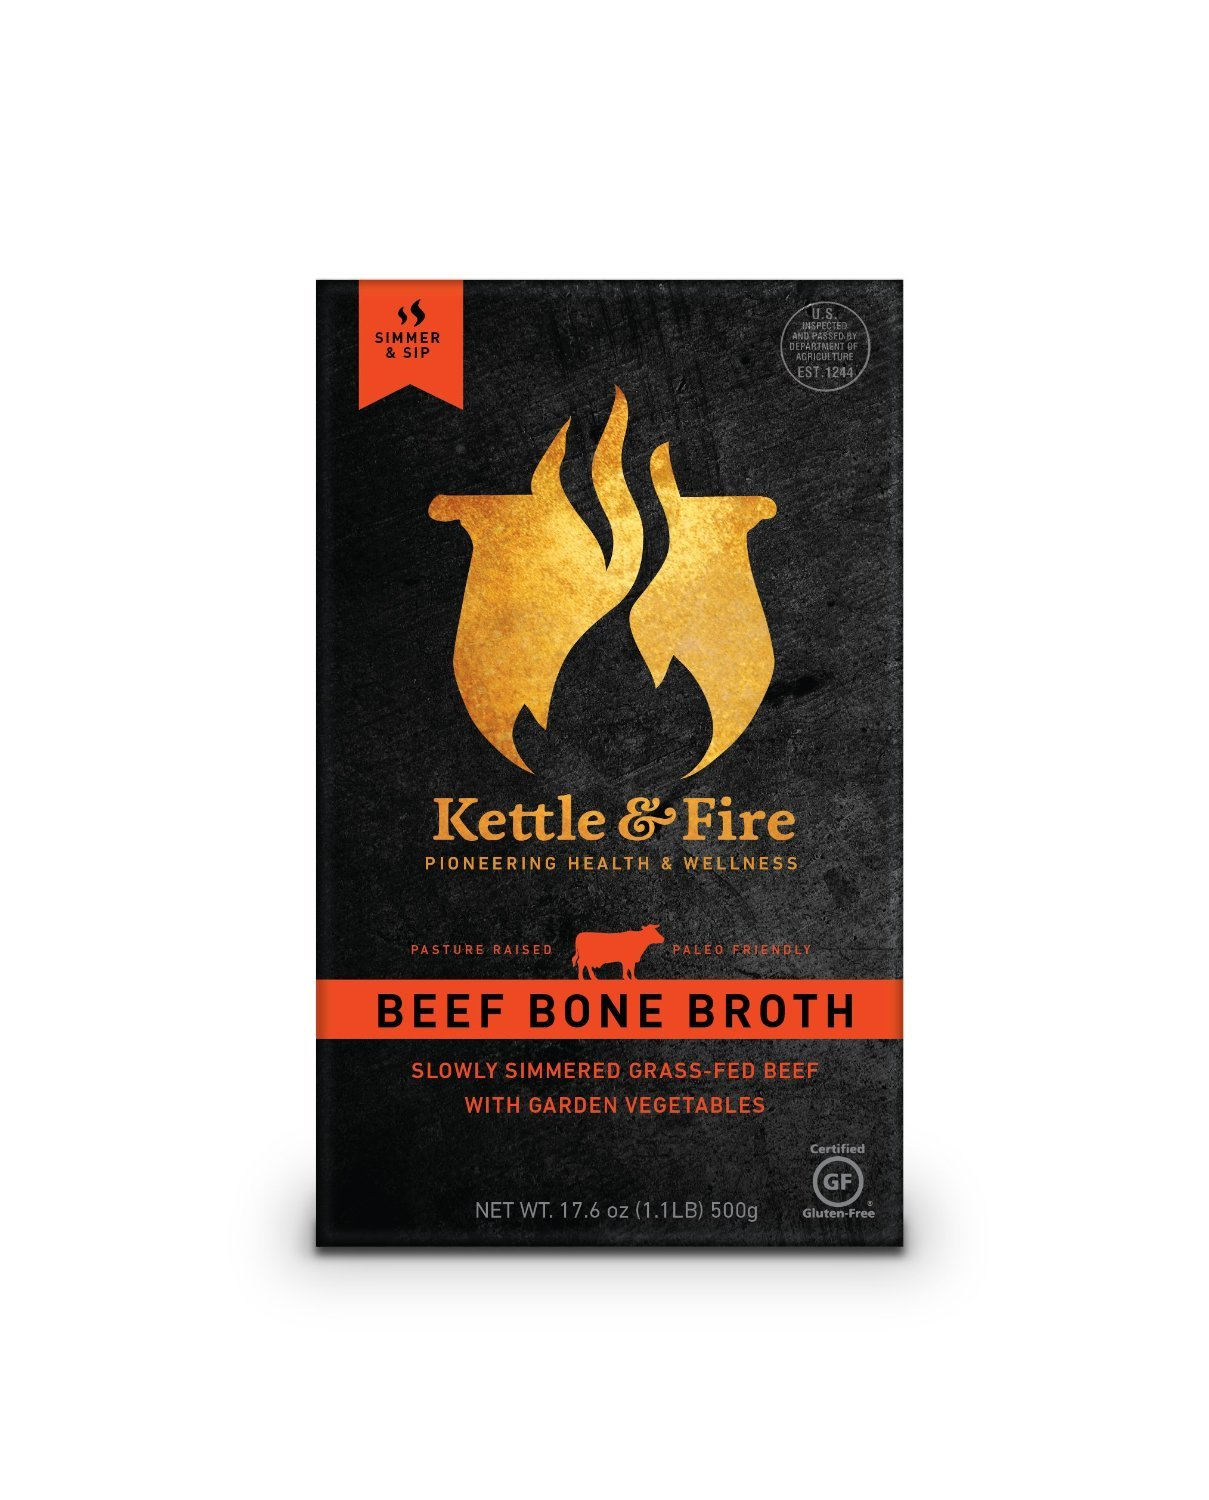 Beef Bone Broth From Grass Fed Cows, Slowly Simmered 24 Hours, 16.9 Oz (4 Pack)